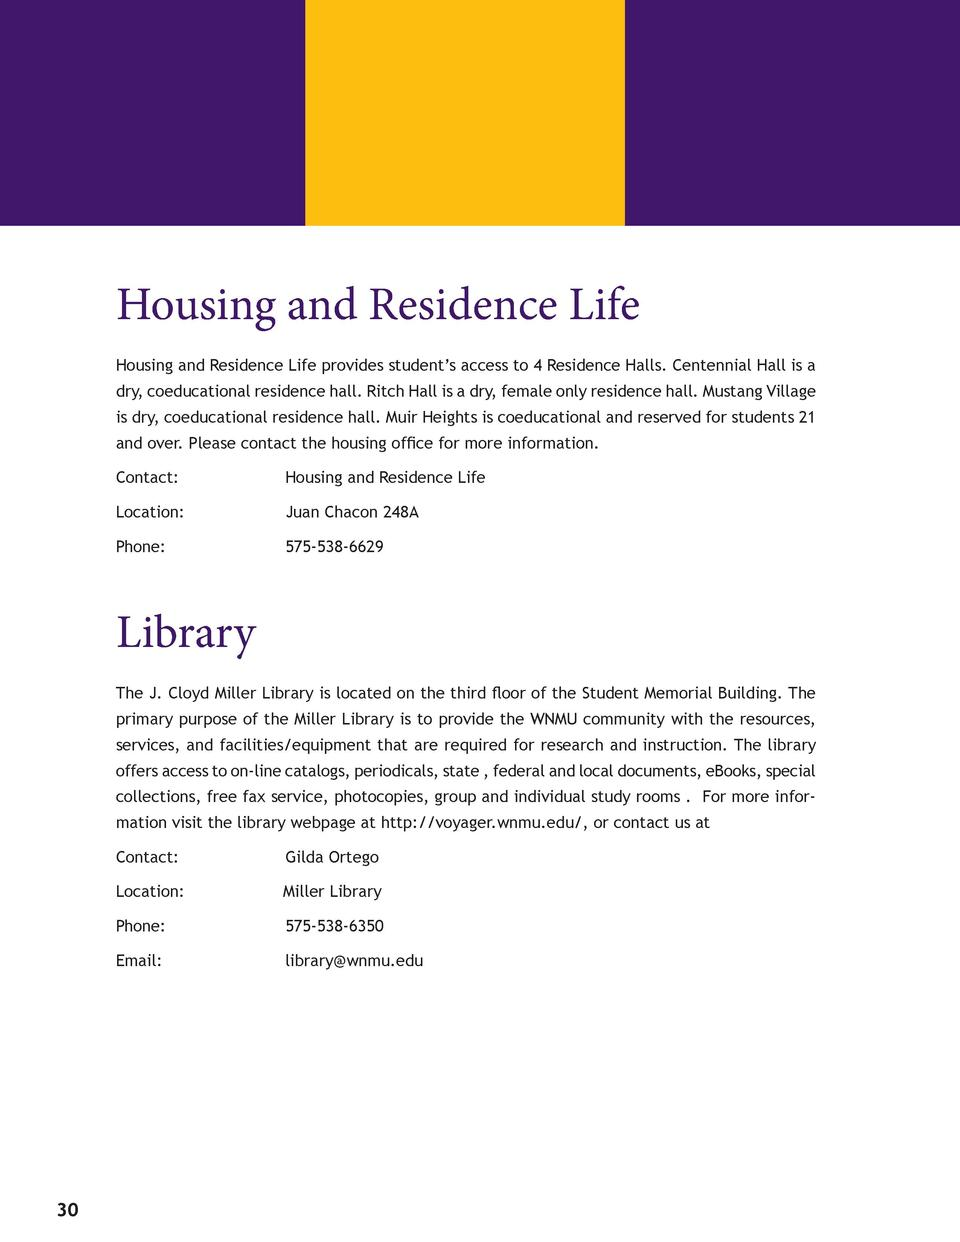 Housing and Residence Life Housing and Residence Life provides student   s access to 4 Residence Halls. Centennial Hall...